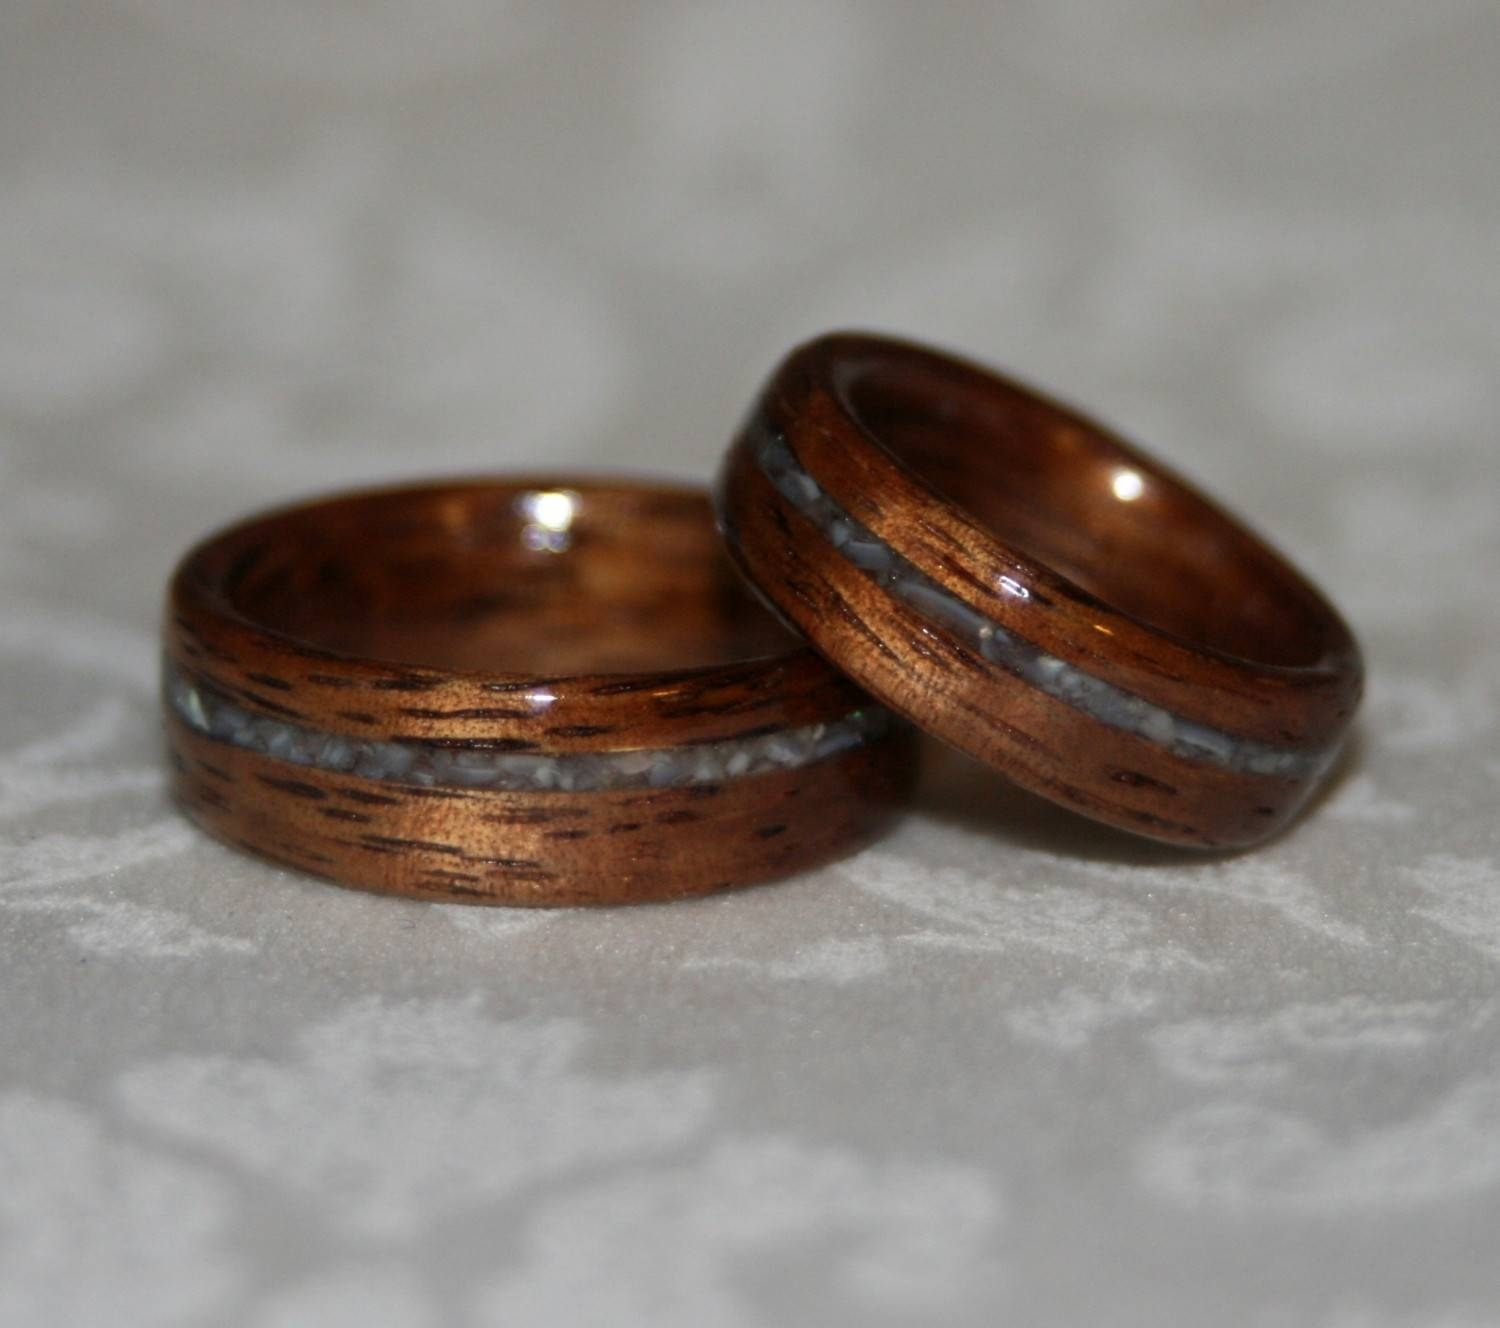 Wood Wedding Bands With Crushed Stone Inlay Bent Wood Method Intended For Wood Inlay Wedding Bands (View 5 of 15)